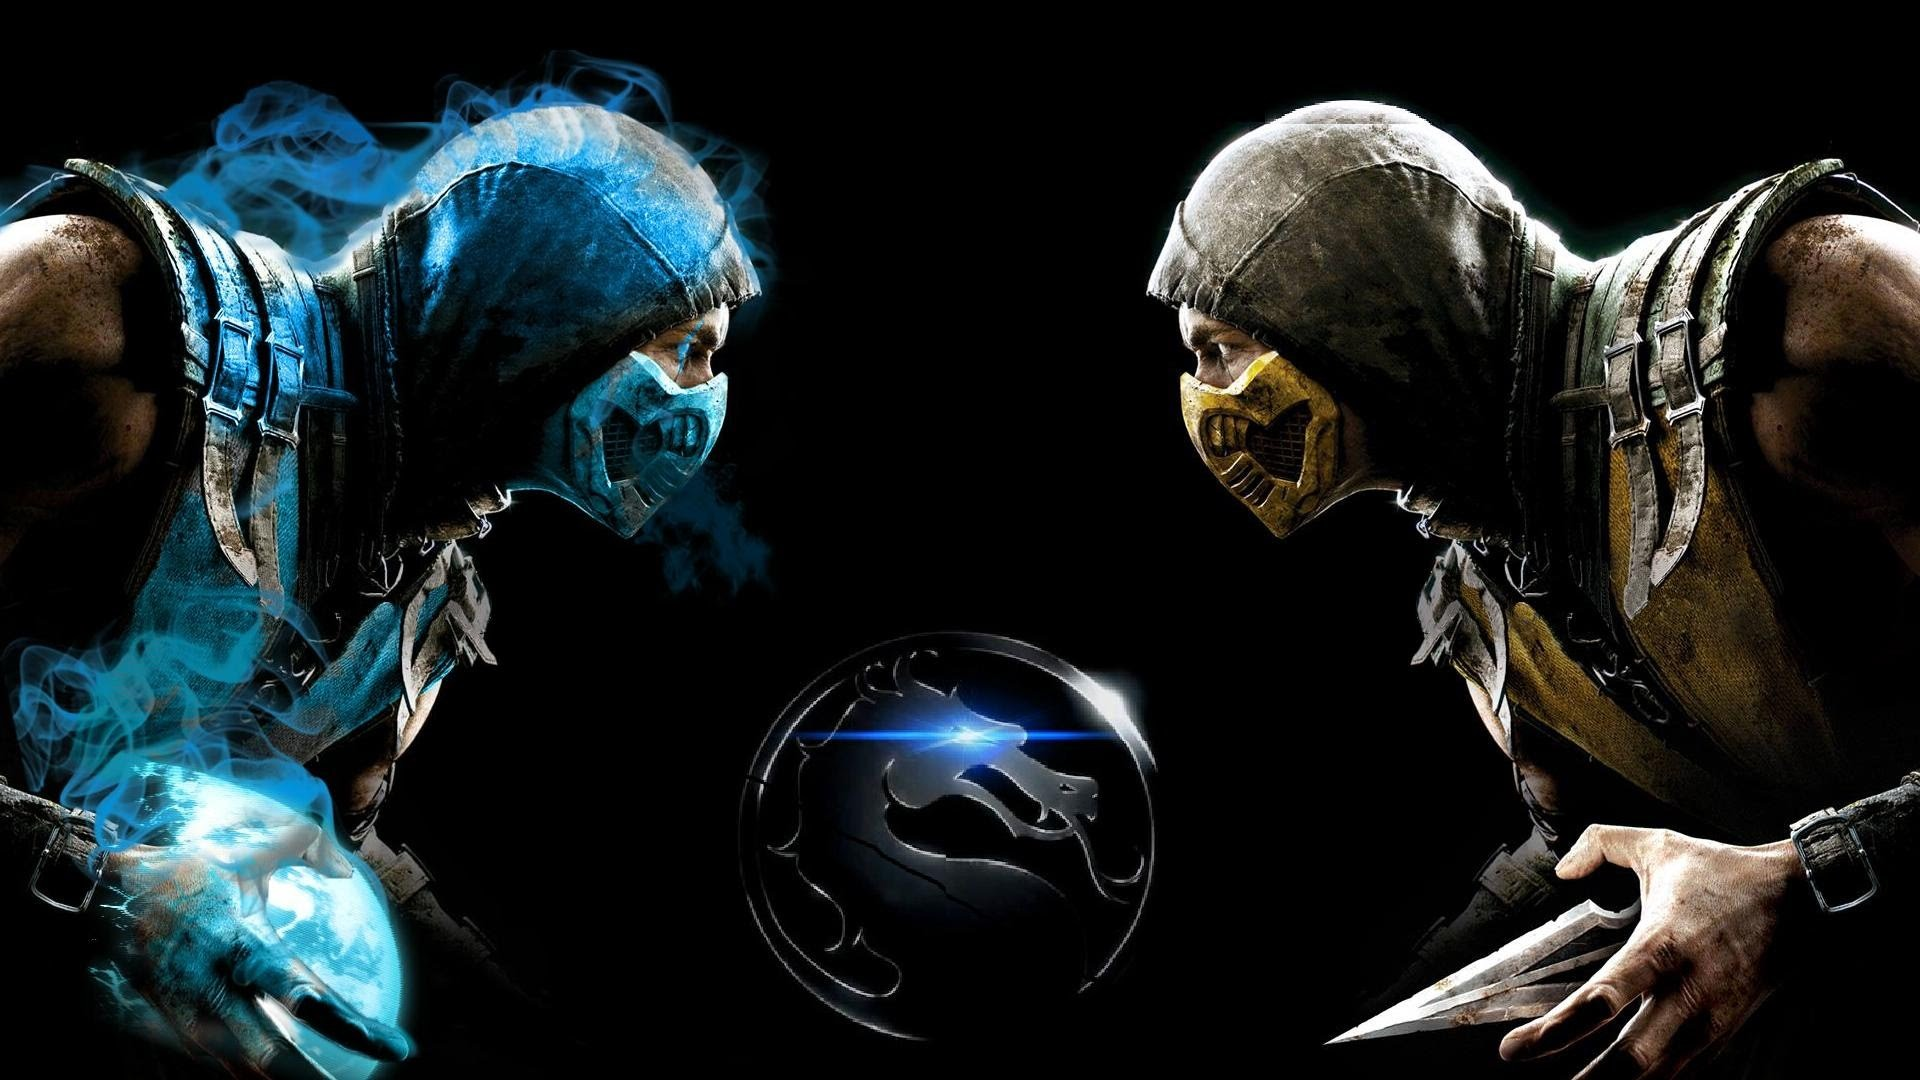 mortal kombat scorpion vs sub zero wallpaper ·①